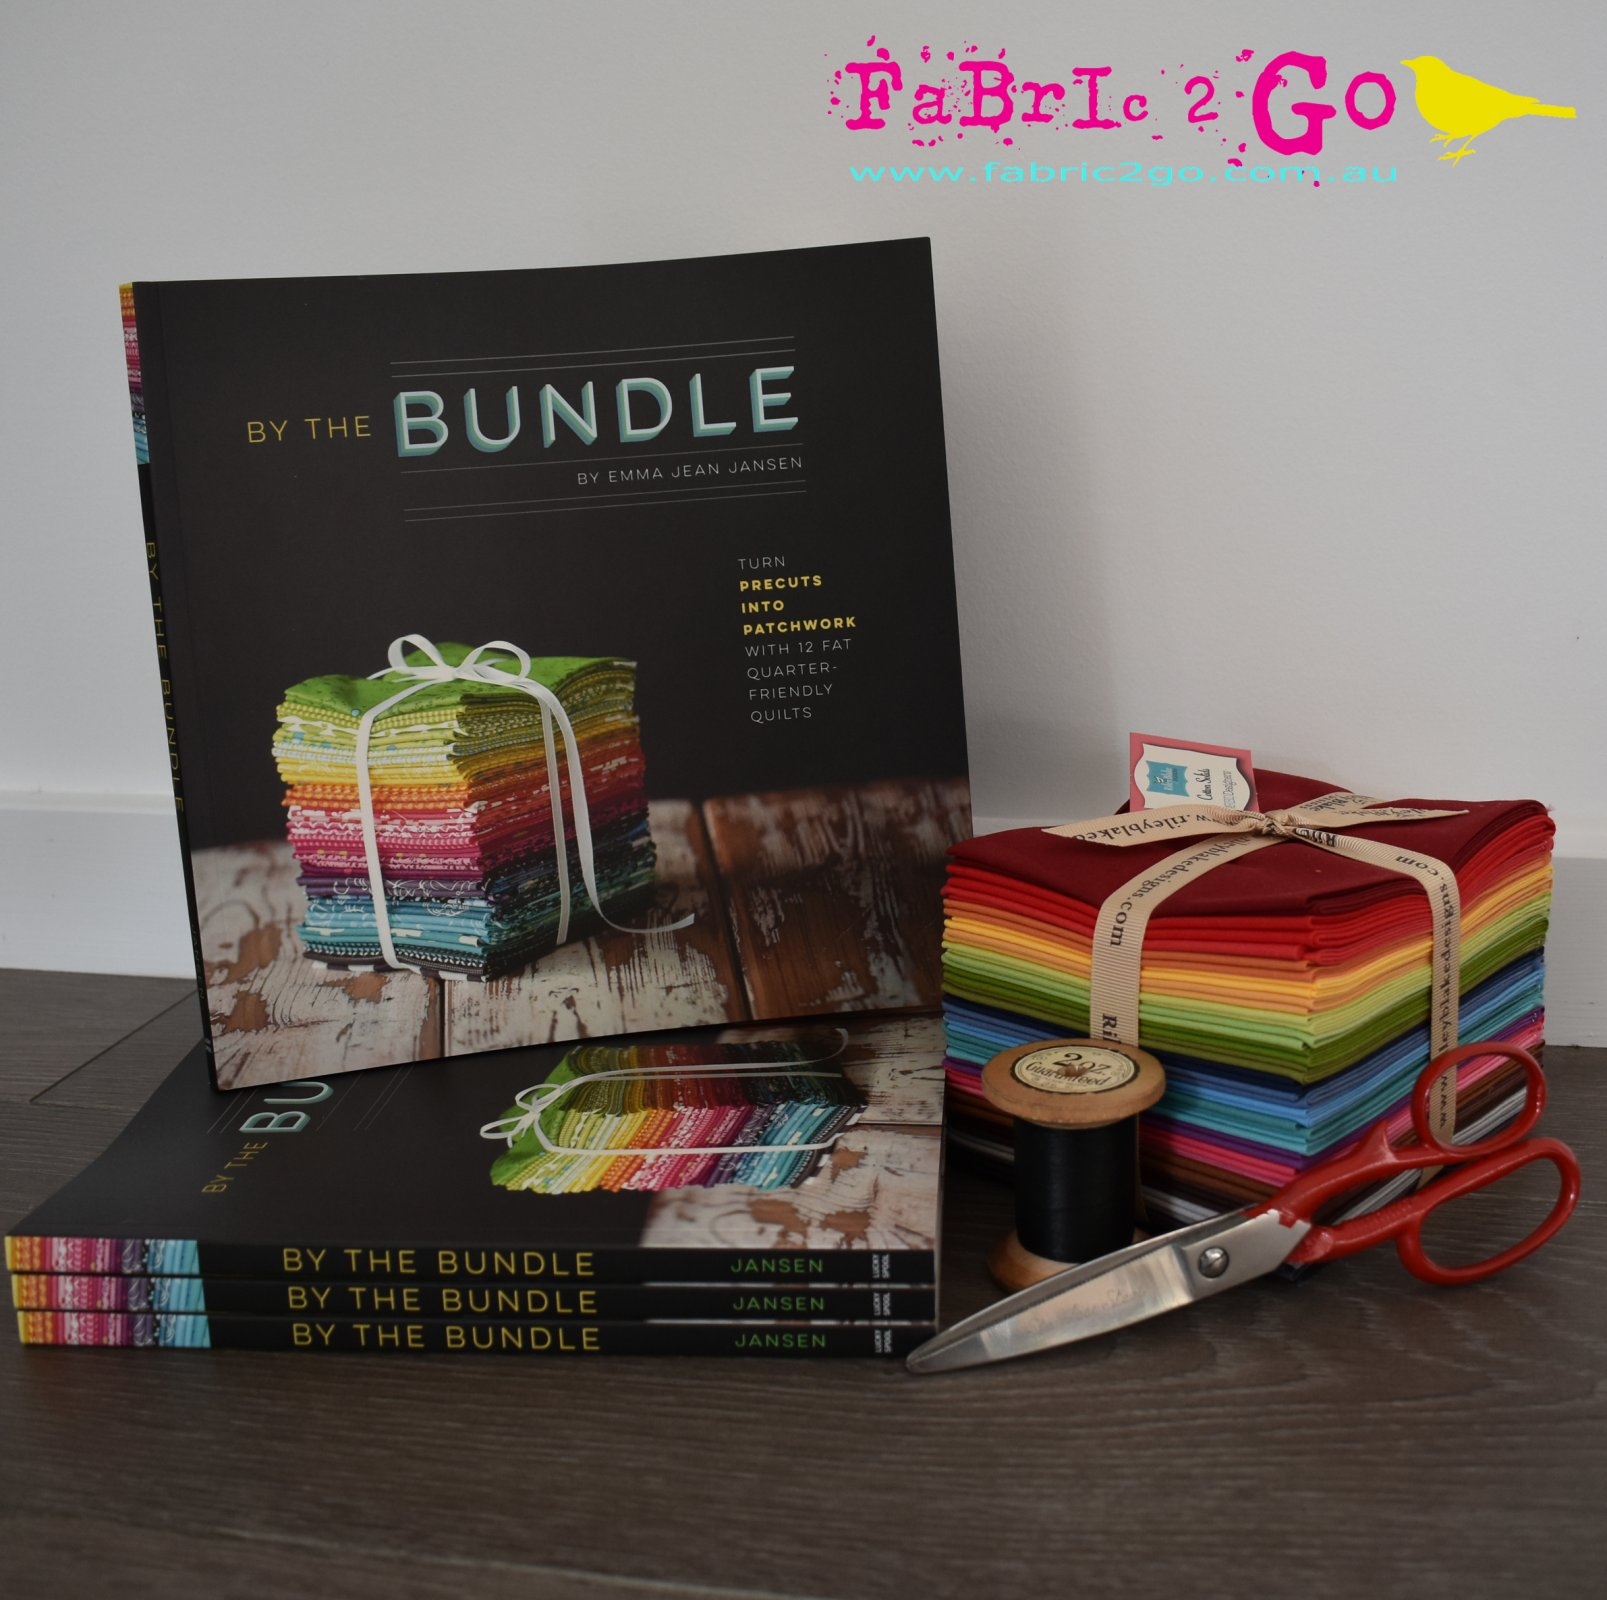 By the Bundle Book by Emma Jean Jansen - Signed Copy